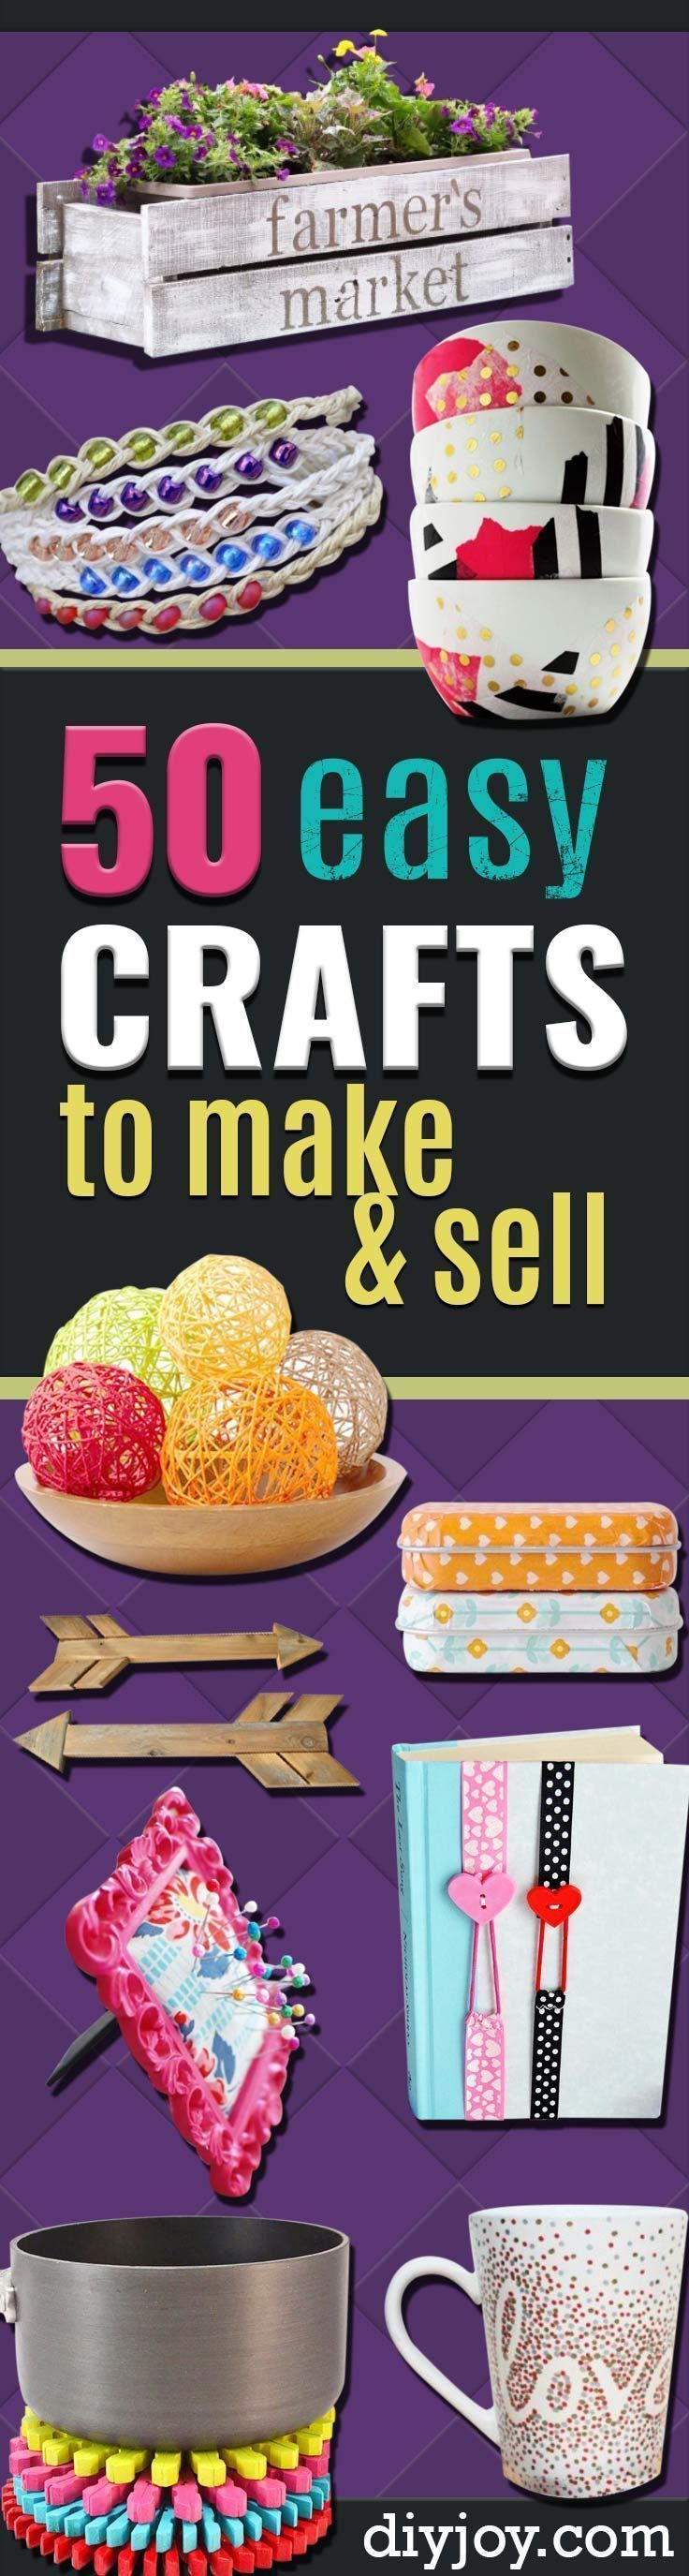 288 best craft ideas for christmas fair images on for Great crafts to make and sell